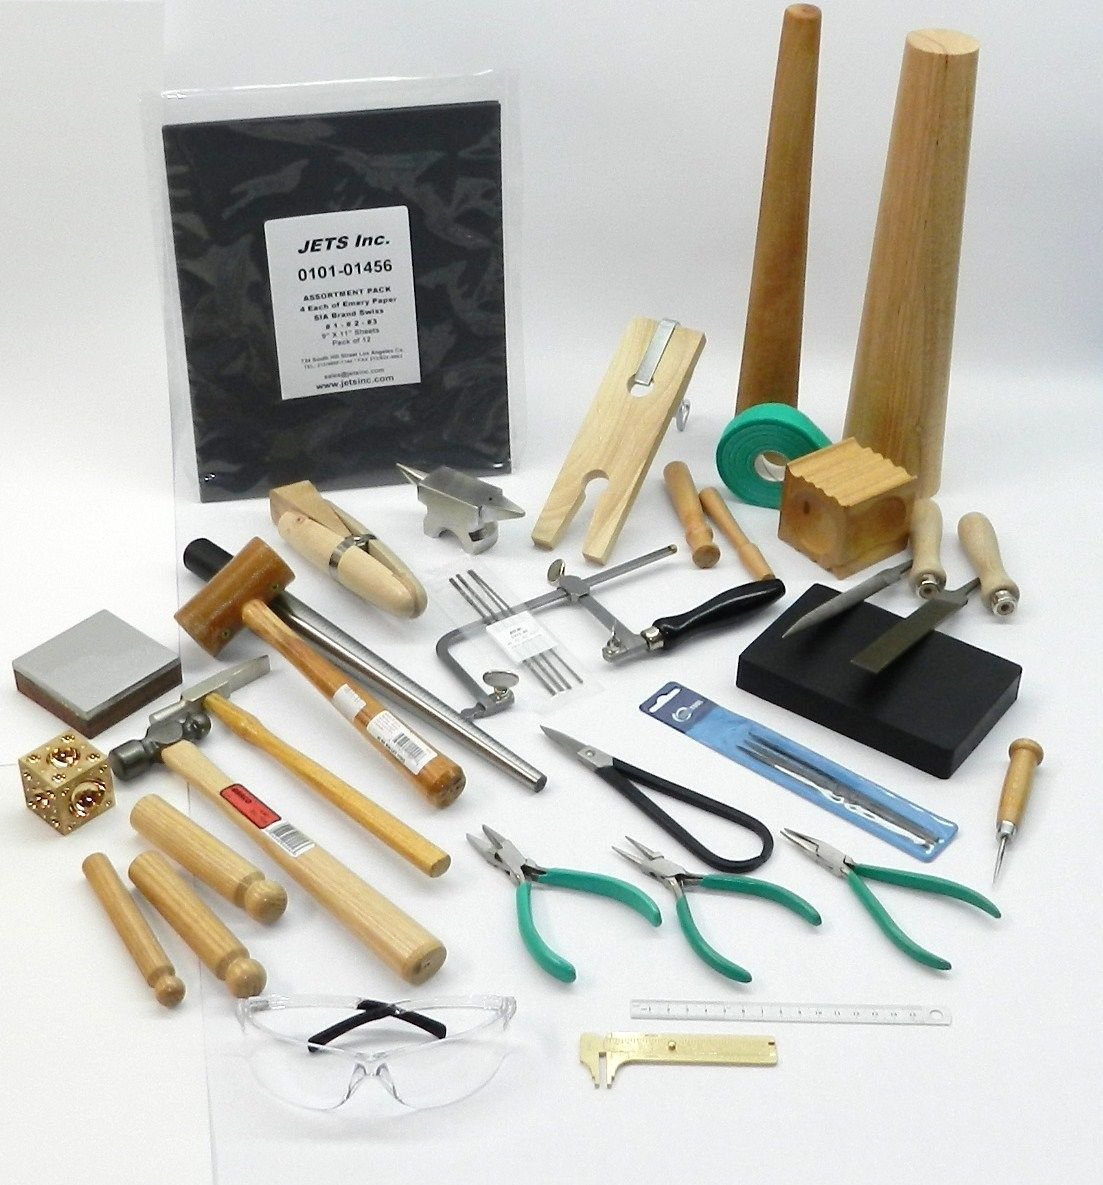 METALSMITH TOOLS KIT BEGINNERS -APPRENTICE METALSMITHING JEWELRY MAKING TOOL SET (LZ 13.10 LARGE BOX) by NOVEL (Image #5)